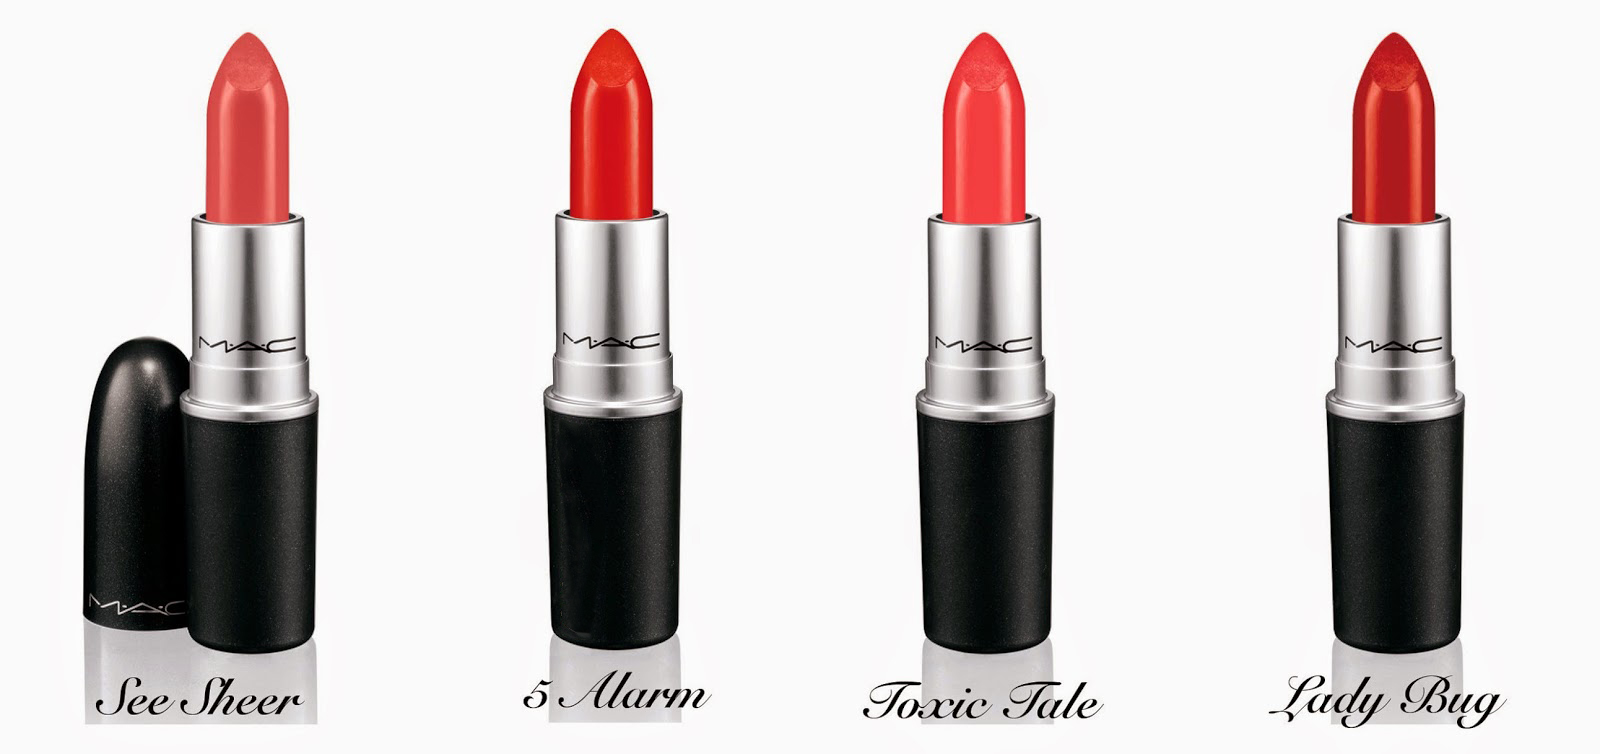 Shopping Tips for MAC Cosmetics: 1. Interested in free lipstick? With the store's Back to Mac Program, you'll get a free MAC lipstick of your choice when you return six packaging containers to a MAC Cosmetics counter. 2. You can always return the unused portion of a product for your money back.